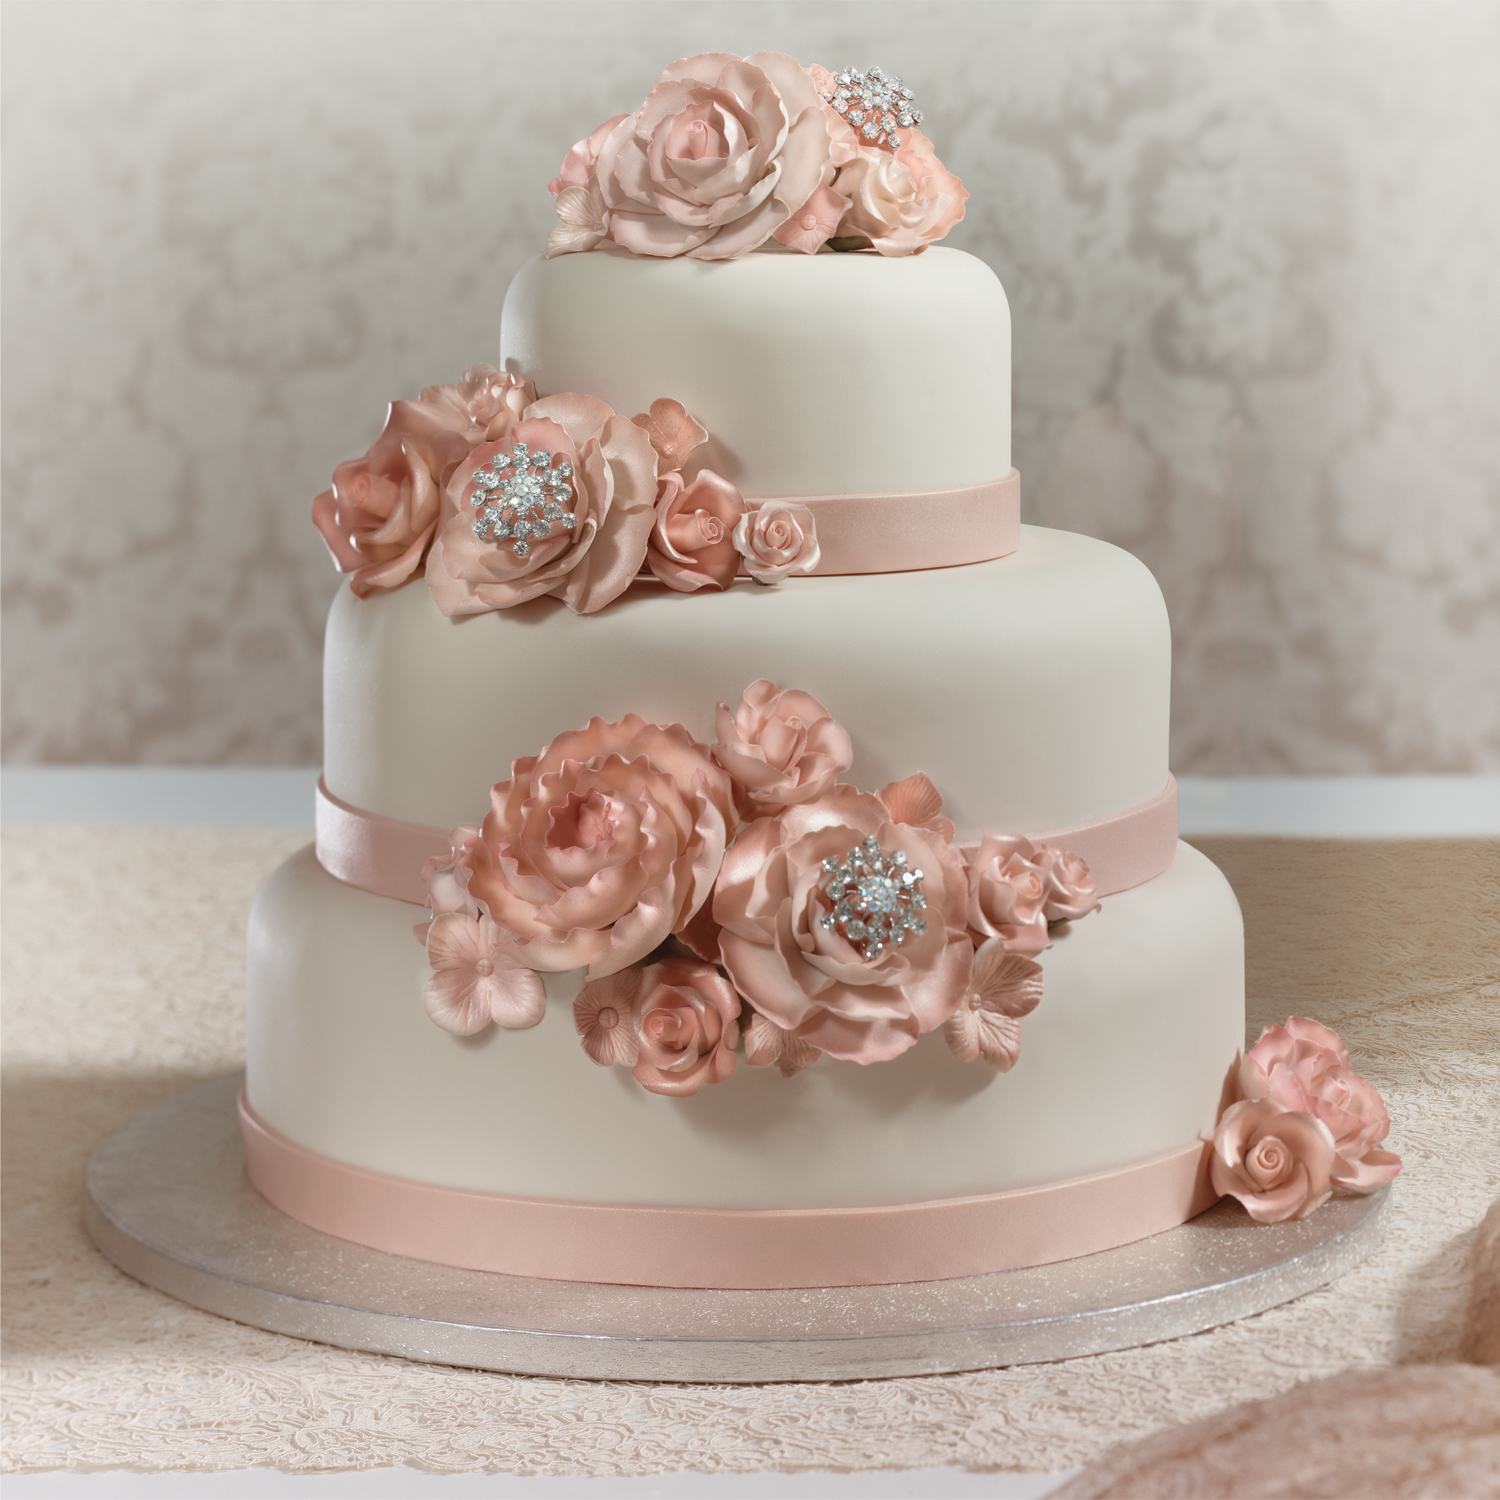 wedding cakes supplies blush wedding cake decopac 8922